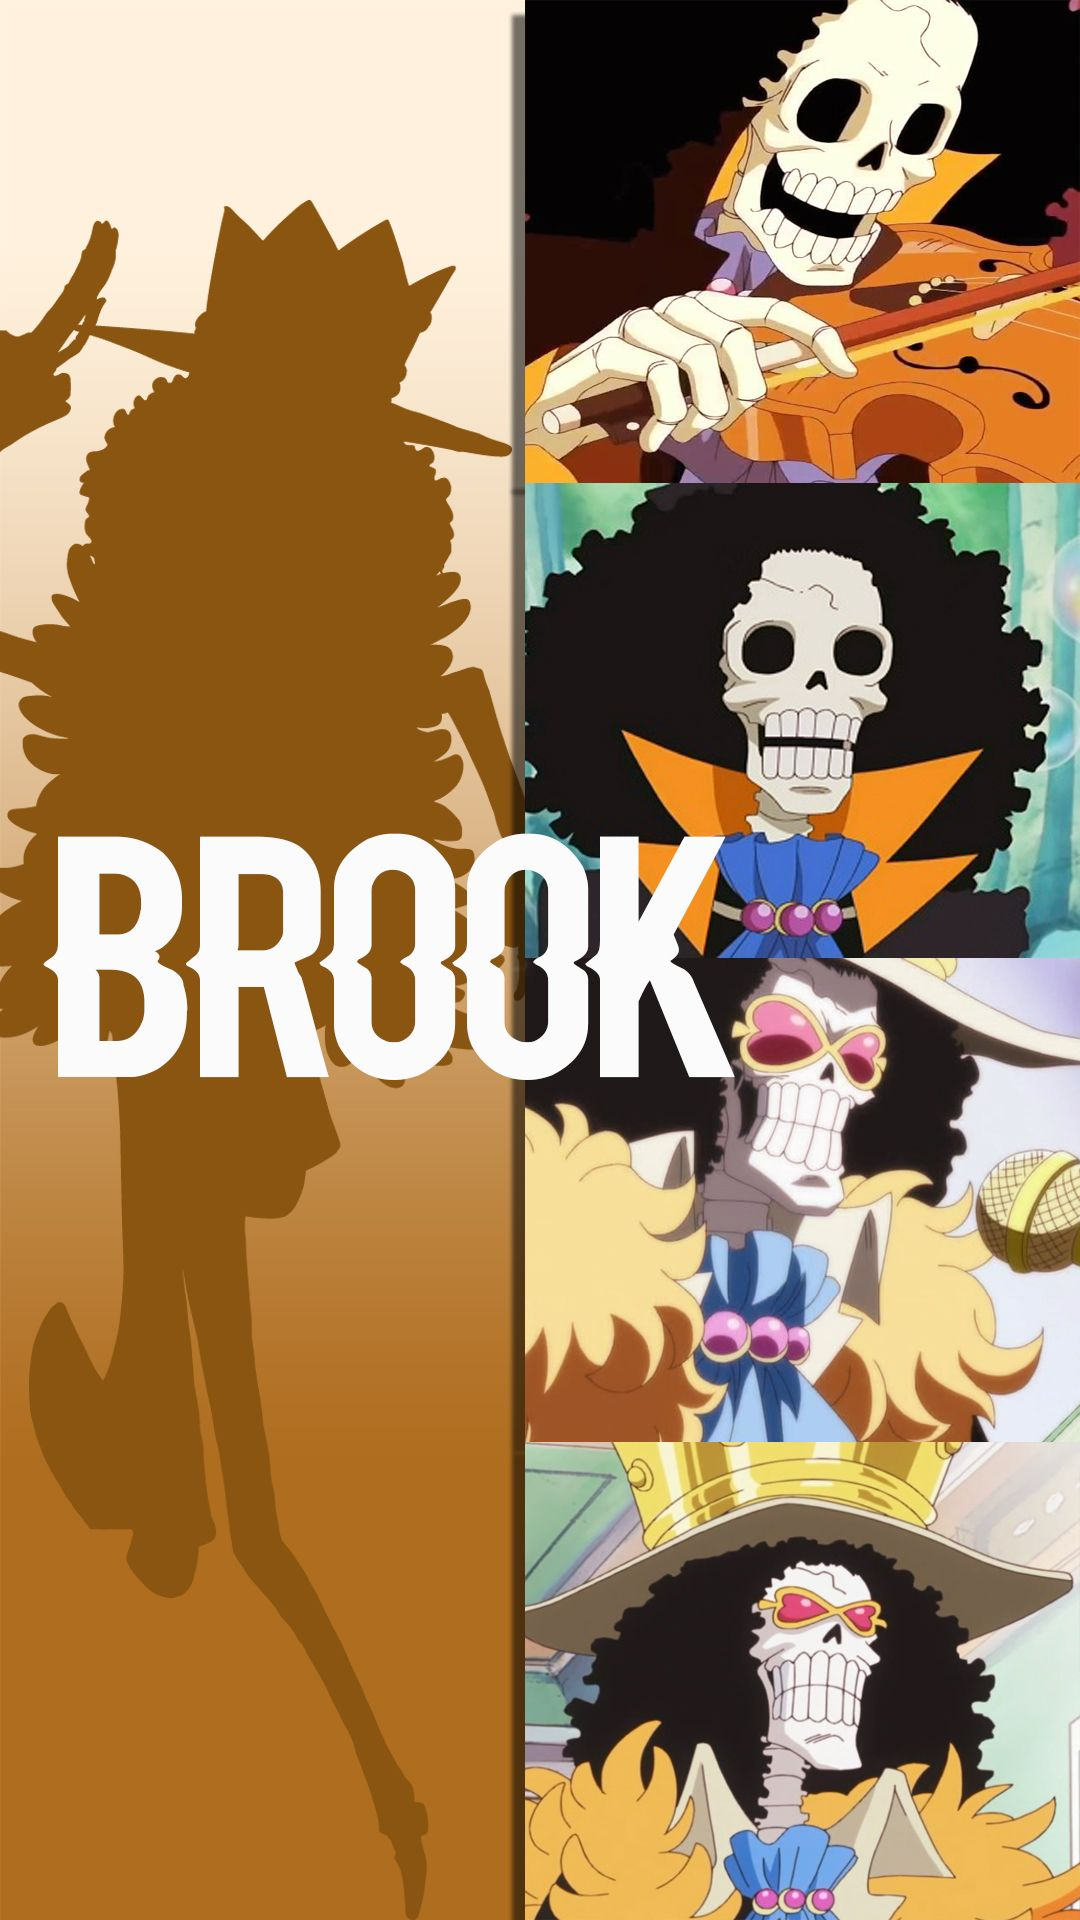 Brook Wallpaper One Piece Sanji One Piece Anime One Piece